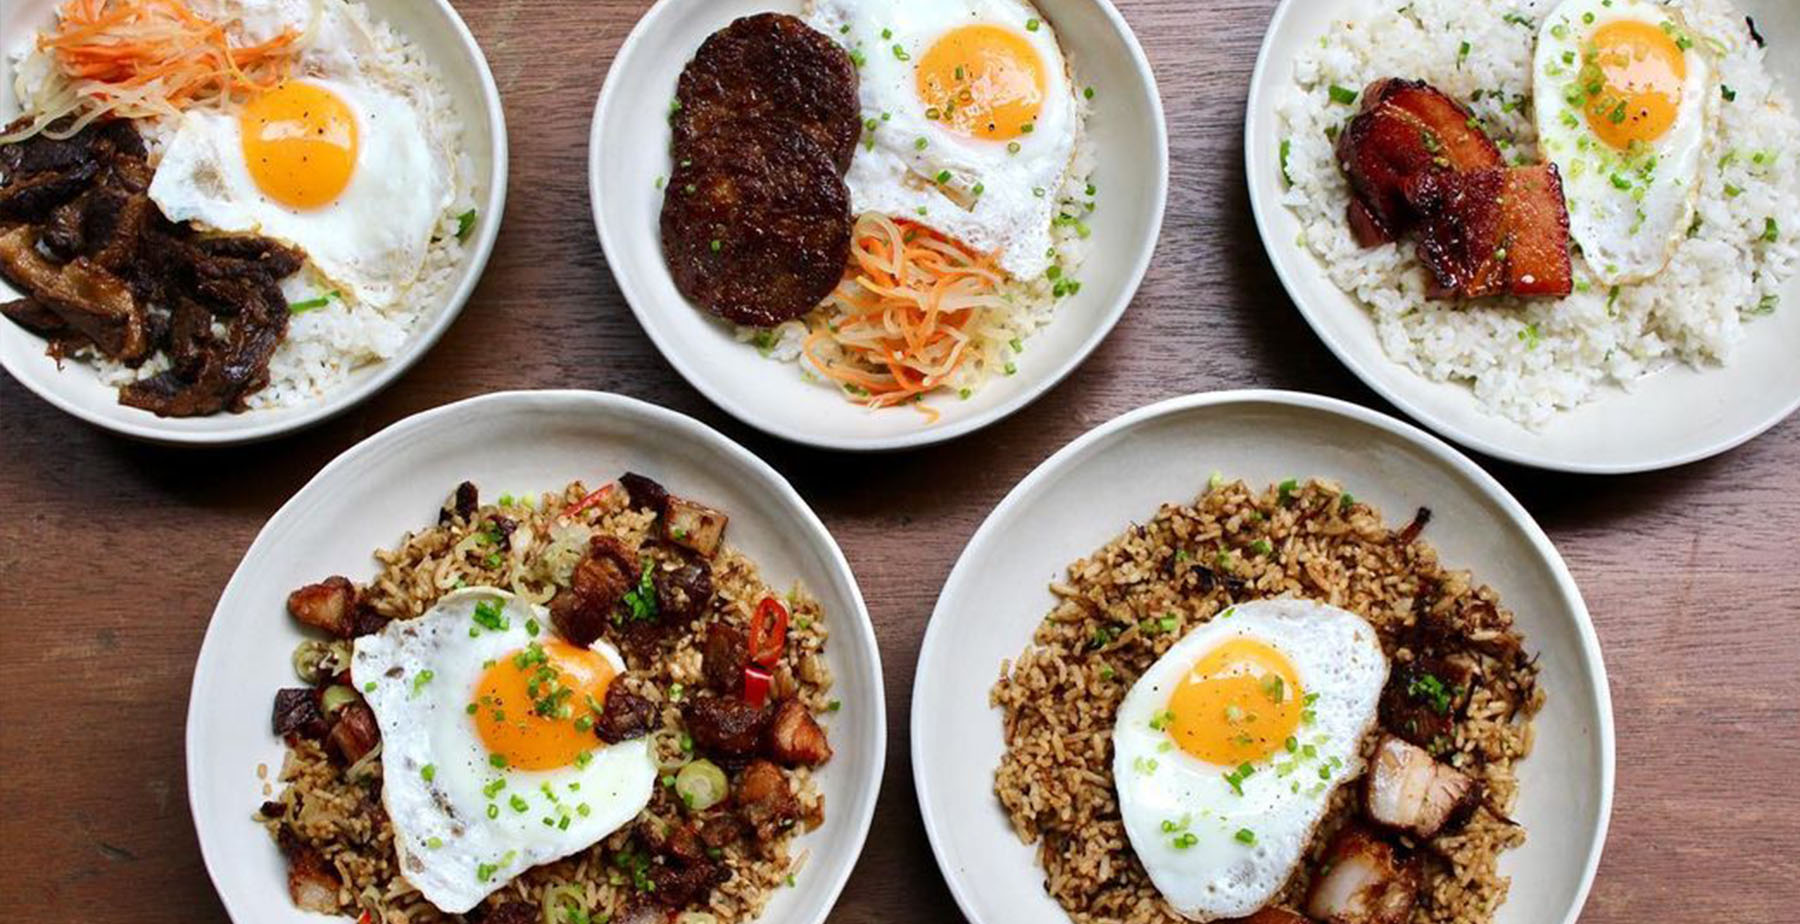 Breakfast bowls from Wildflour Cafe